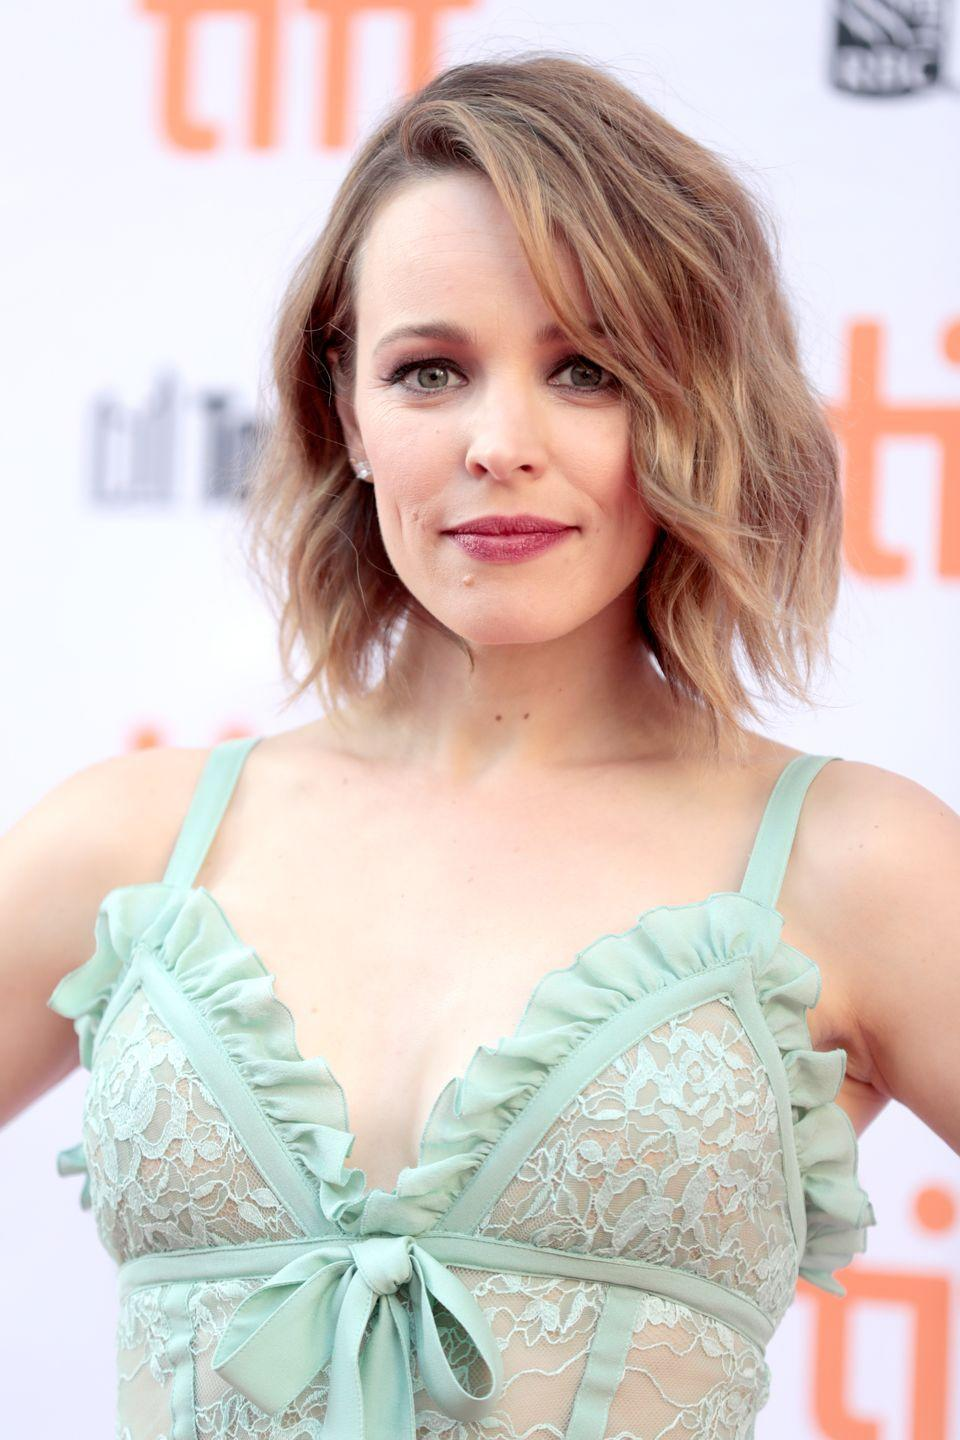 "<p>For three years, Rachel McAdams worked at McDonald's. ""It was a great place to work, but I had a little bit of an OCD thing with hand washing and just didn't have time,"" <a href=""https://www.glamour.com/story/rachel-mcadams-glamour-magazine-cover-interview-ok-we-love-this-girl"" rel=""nofollow noopener"" target=""_blank"" data-ylk=""slk:she told Glamour"" class=""link rapid-noclick-resp"">she told <em>Glamour</em></a>. ""I was not a great employee; I broke the orange juice machine one day.""</p>"